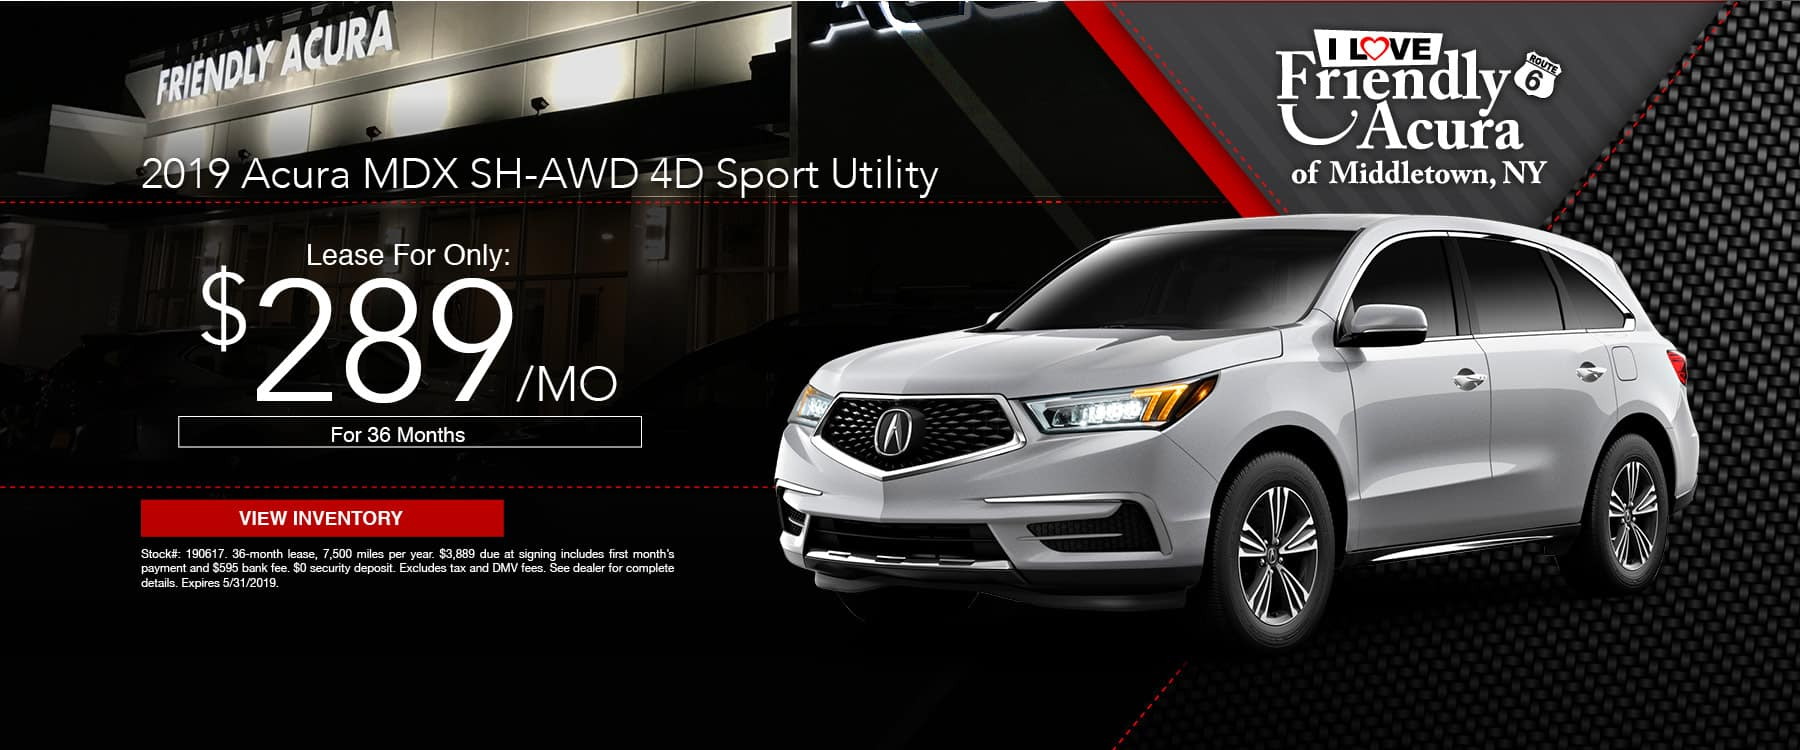 Drive a Friendly Acura MDX for just $289 a month!